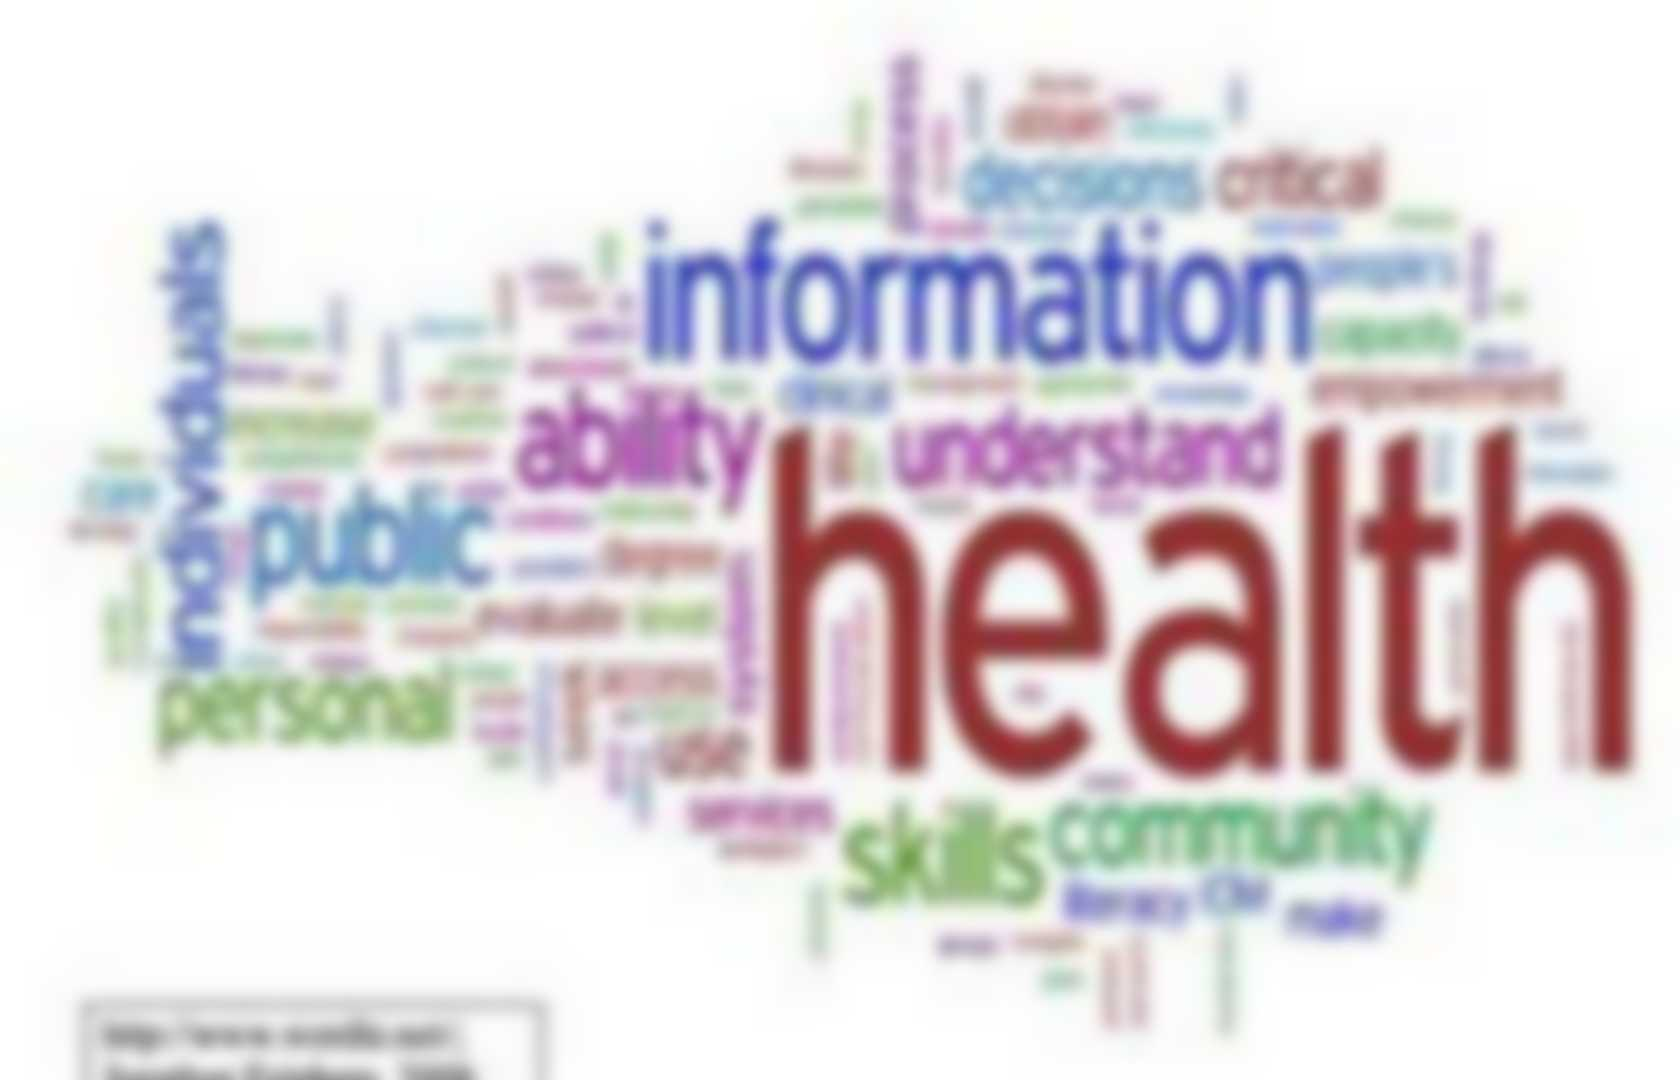 communication health care and electronic medical Electronic communication in medical practice liability aspects of electronic health information systems, including health records presentations made regarding risks associated with electronic communication in health care practices.